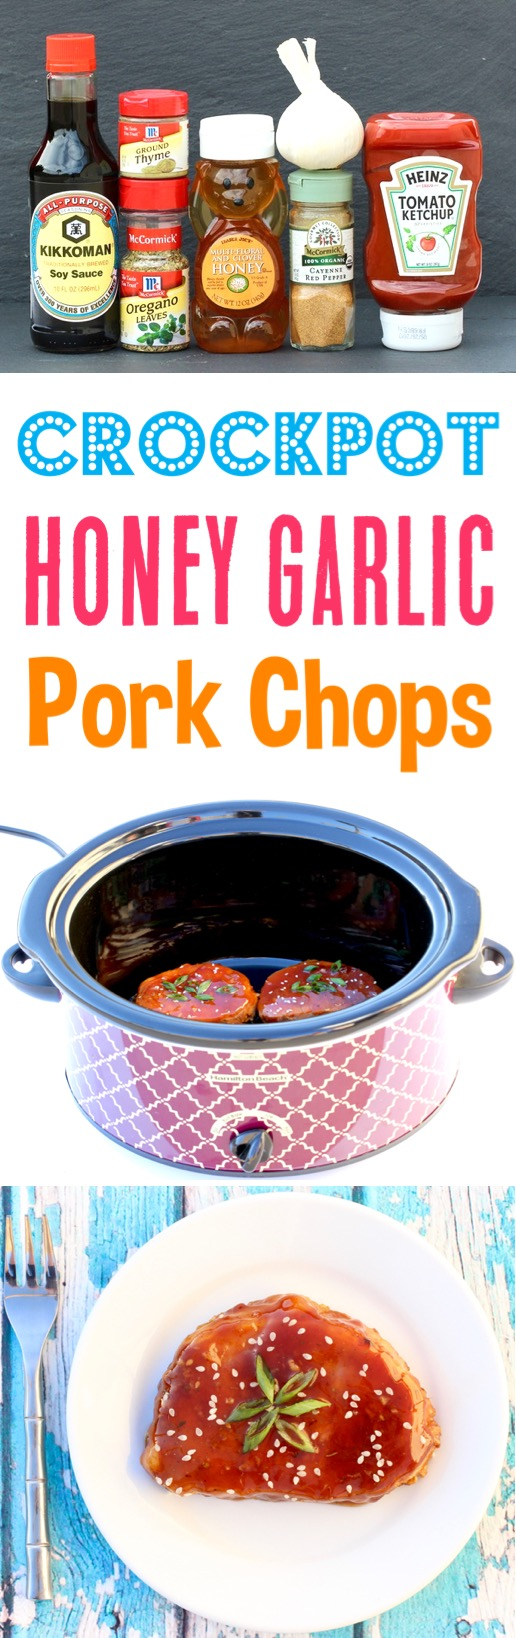 Crockpot Honey Garlic Pork Chops Recipe Easy Dinner